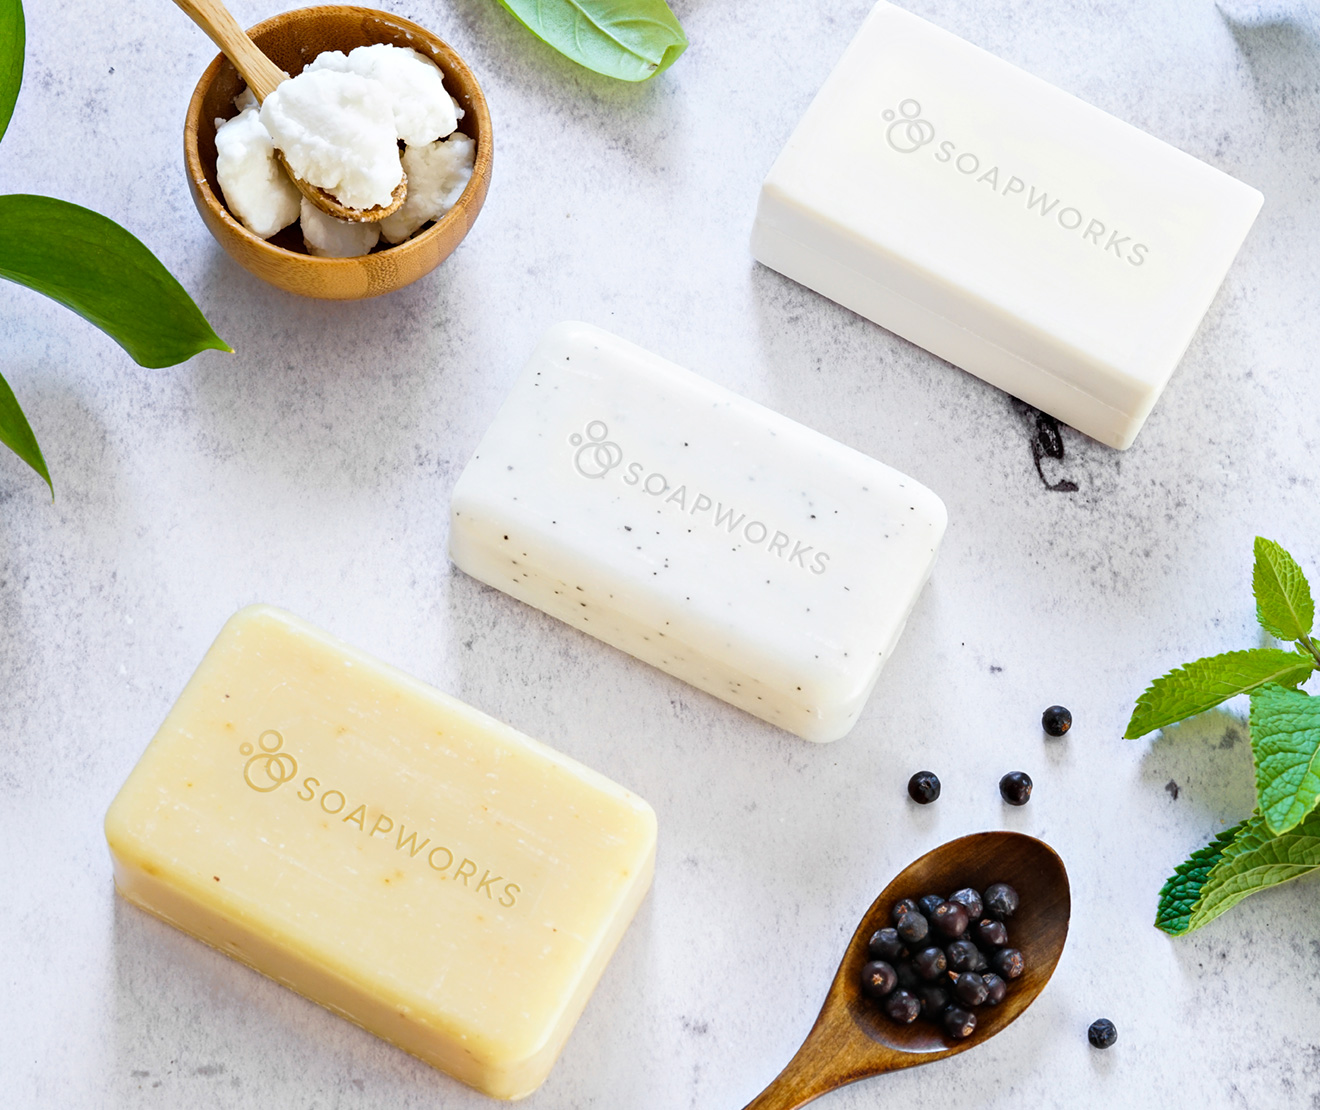 Bar Soaps with natural ingredients on a marble background